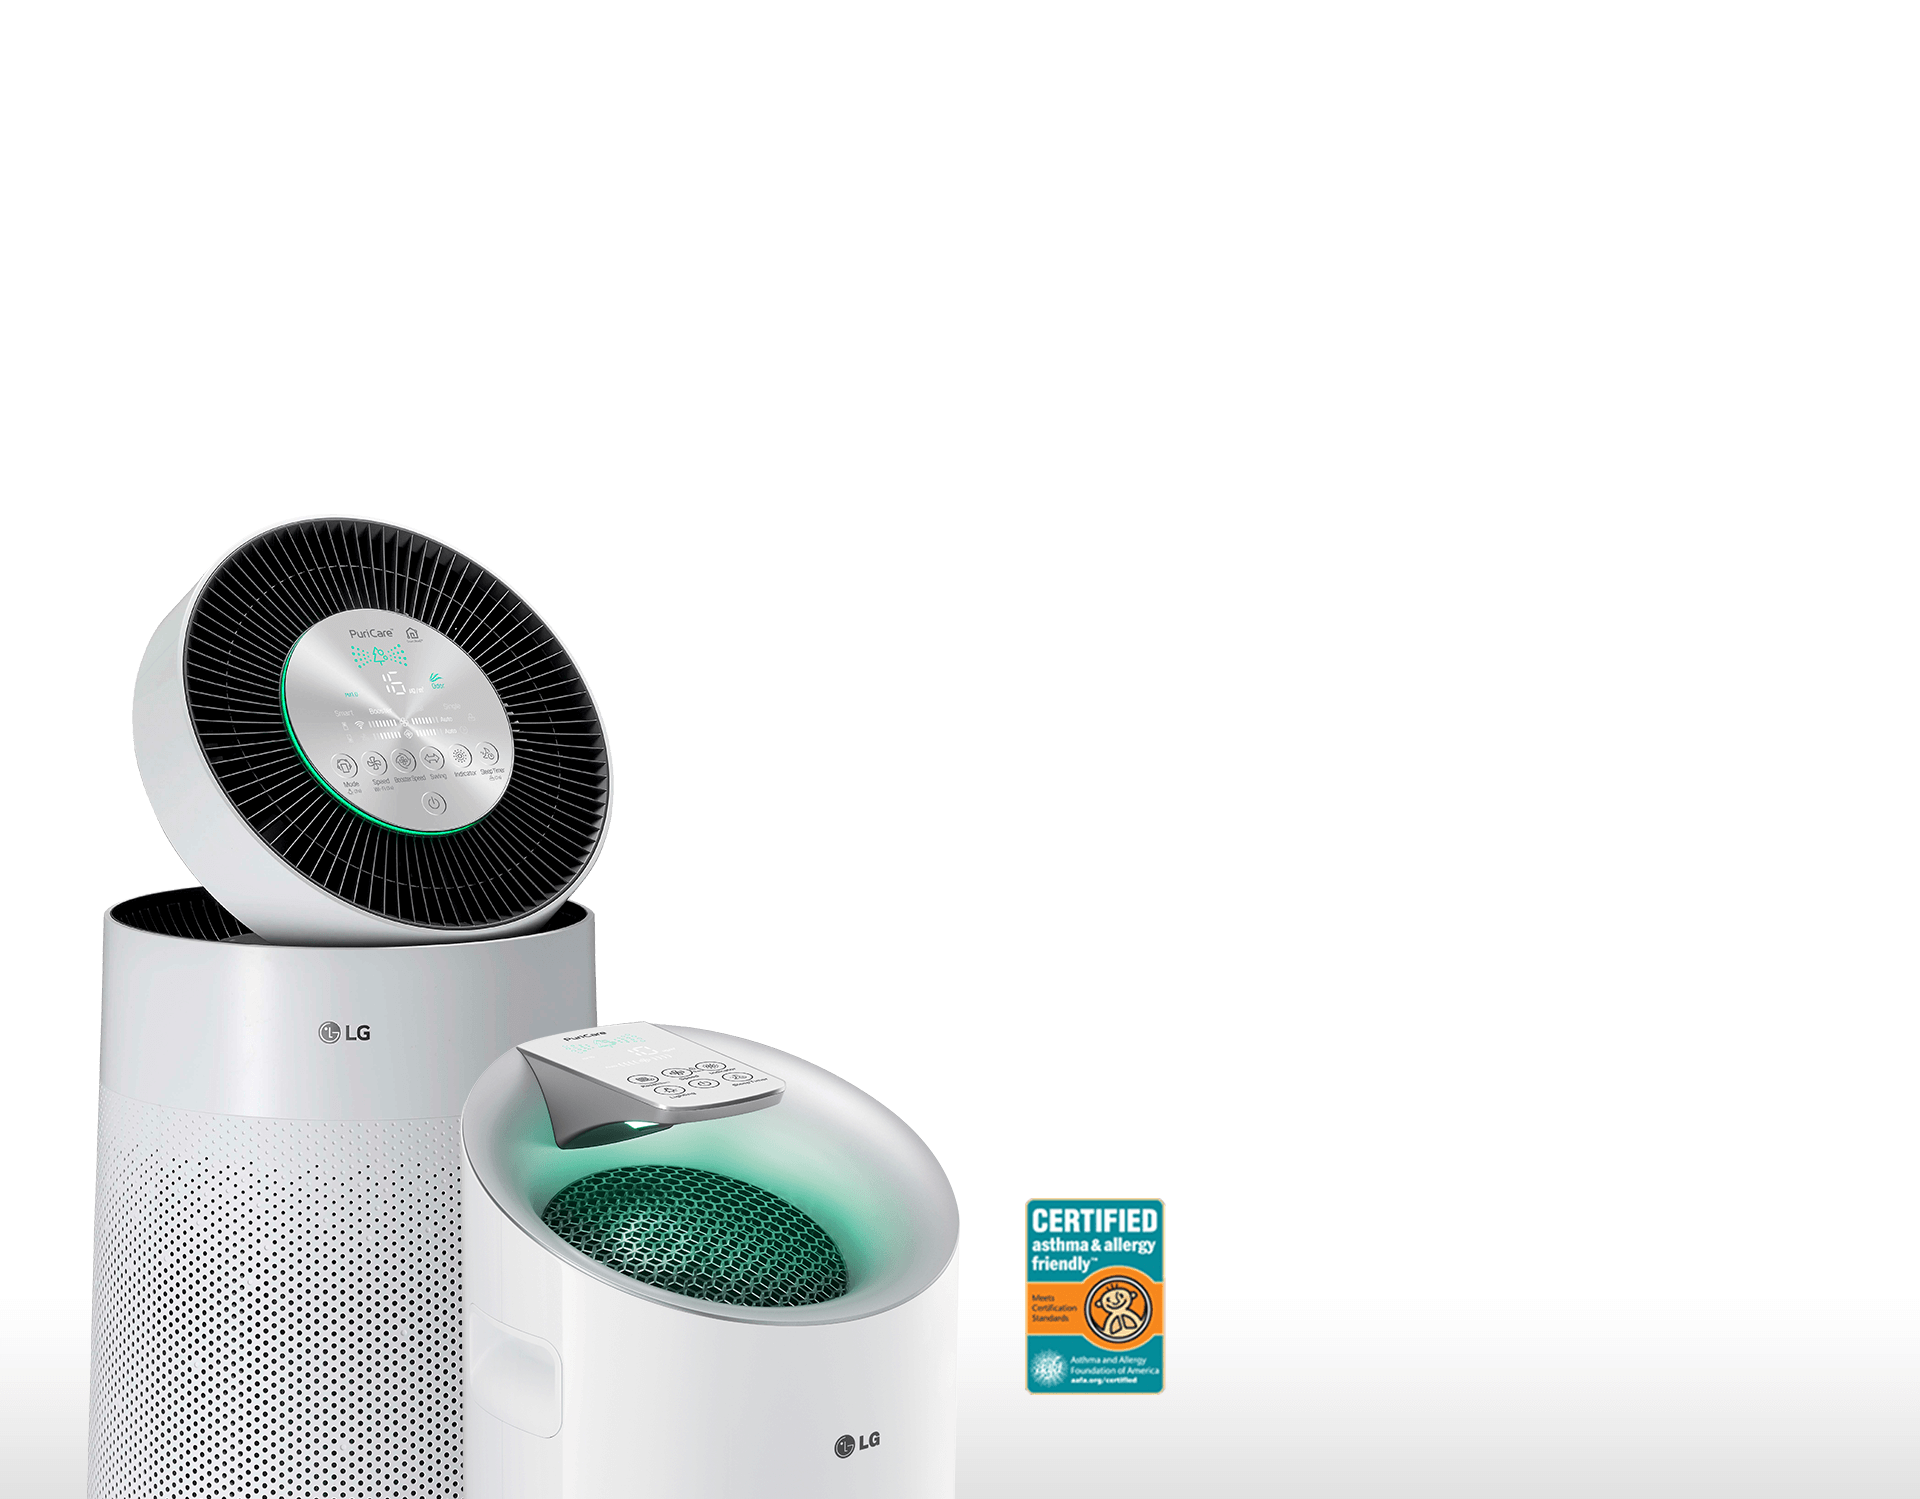 The LG PuriCare™ Dehumidifier gives you cleaner, more